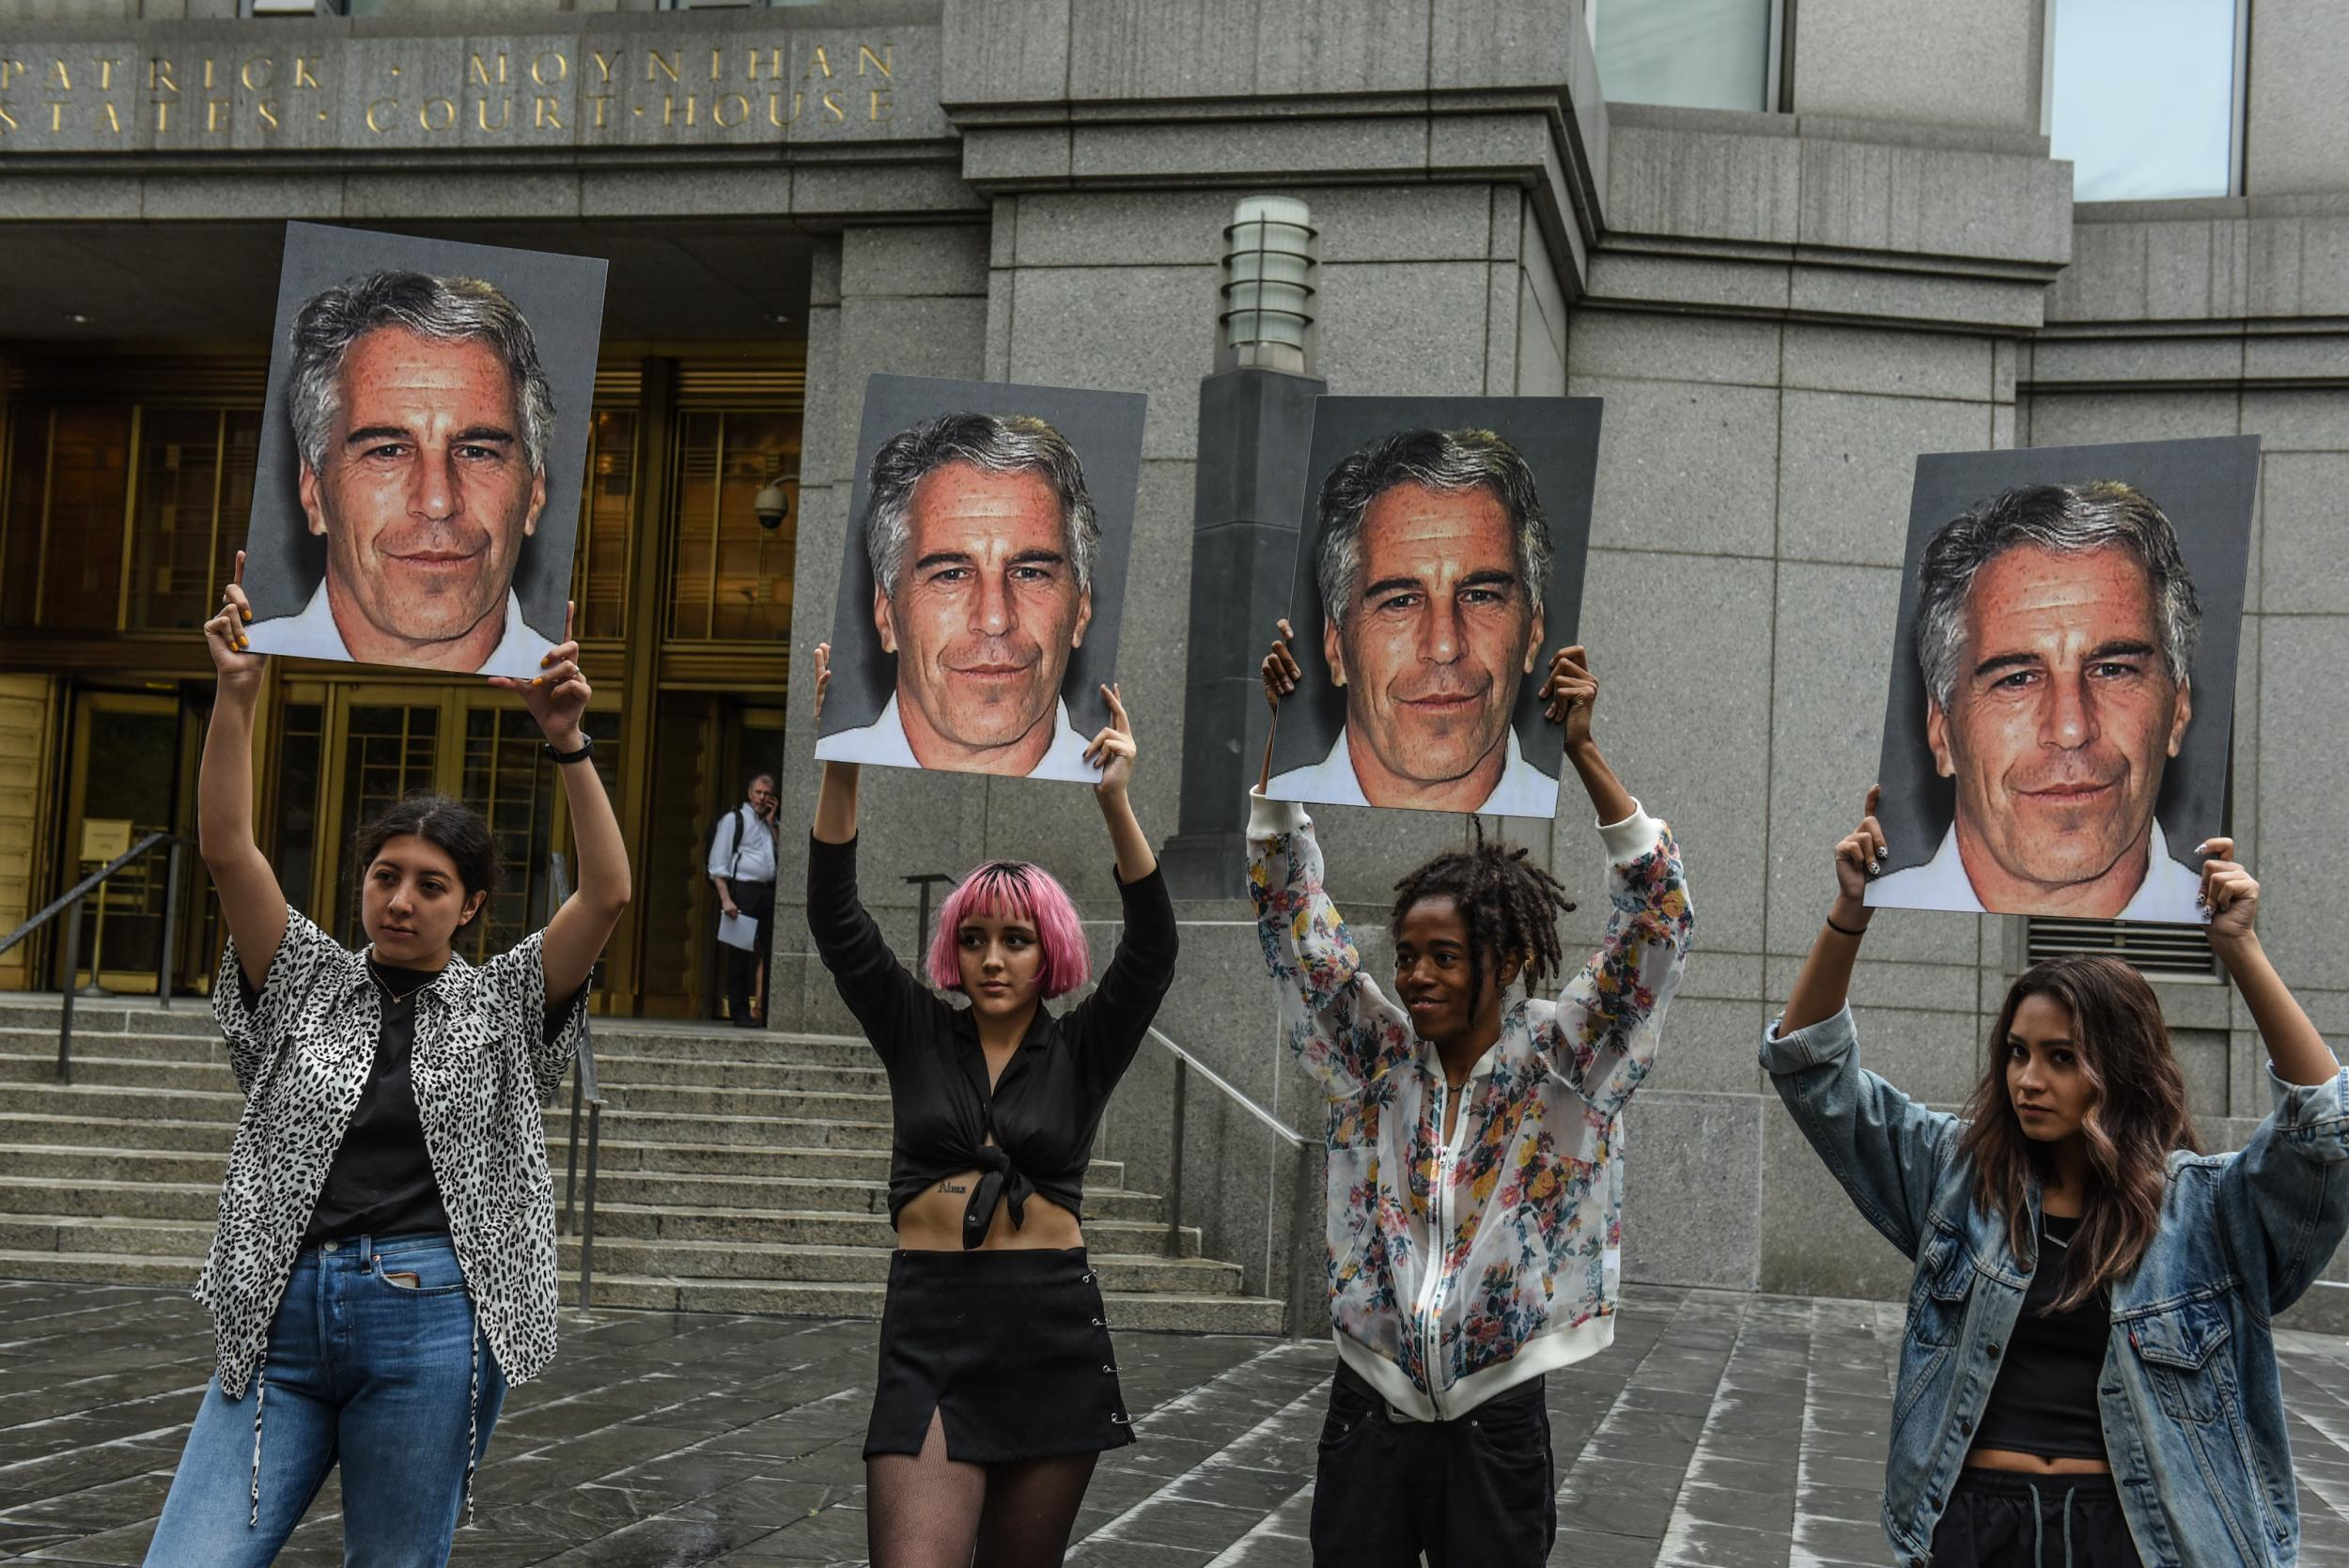 Epstein had office at Harvard University and visited after sex offender conviction, new report finds photo